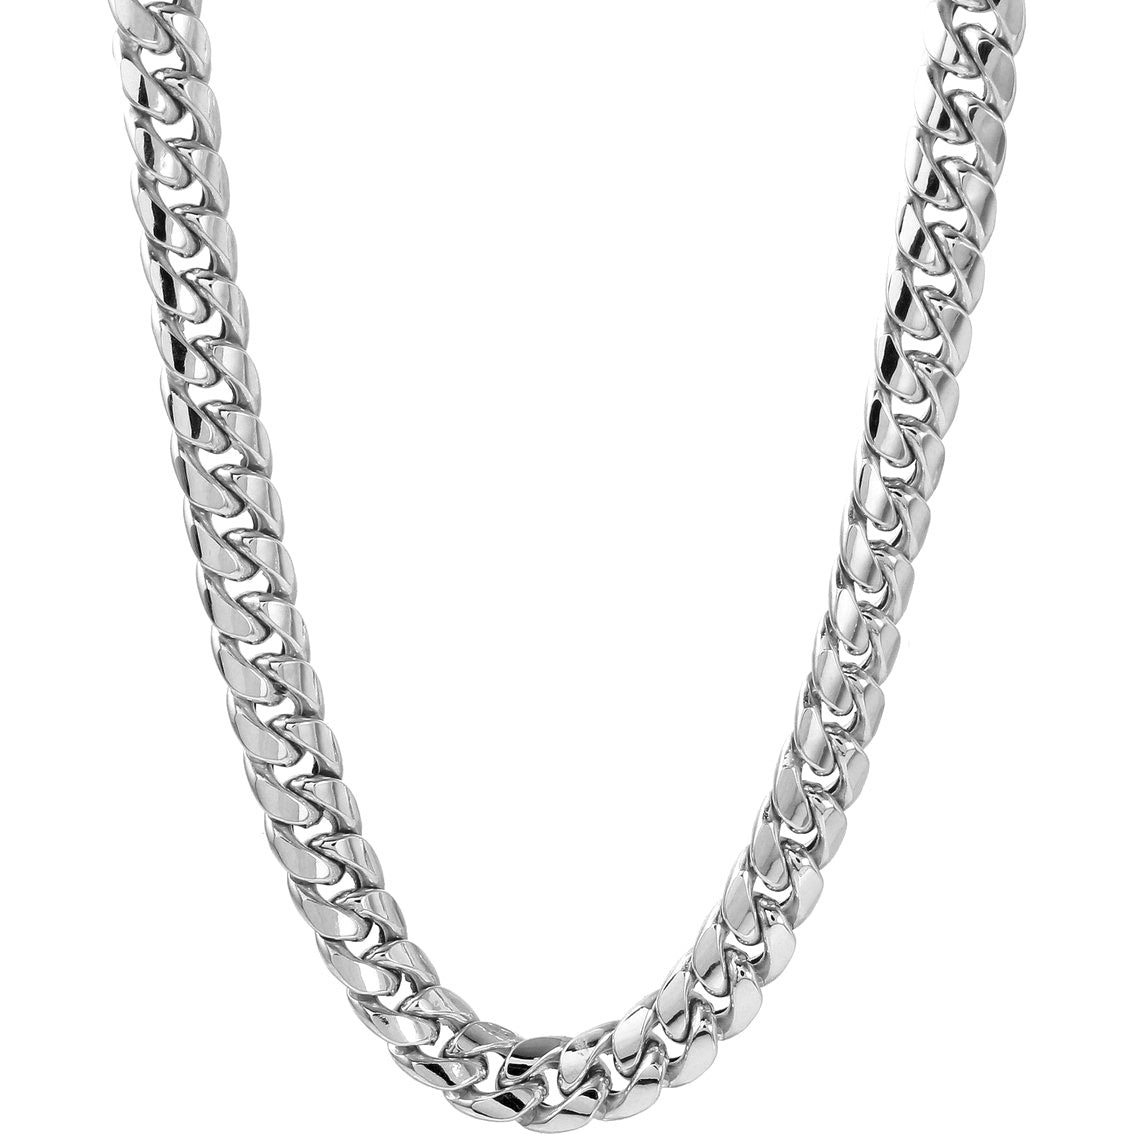 14kt Solid White Gold 7MM Miami Cuban Link Chain 22